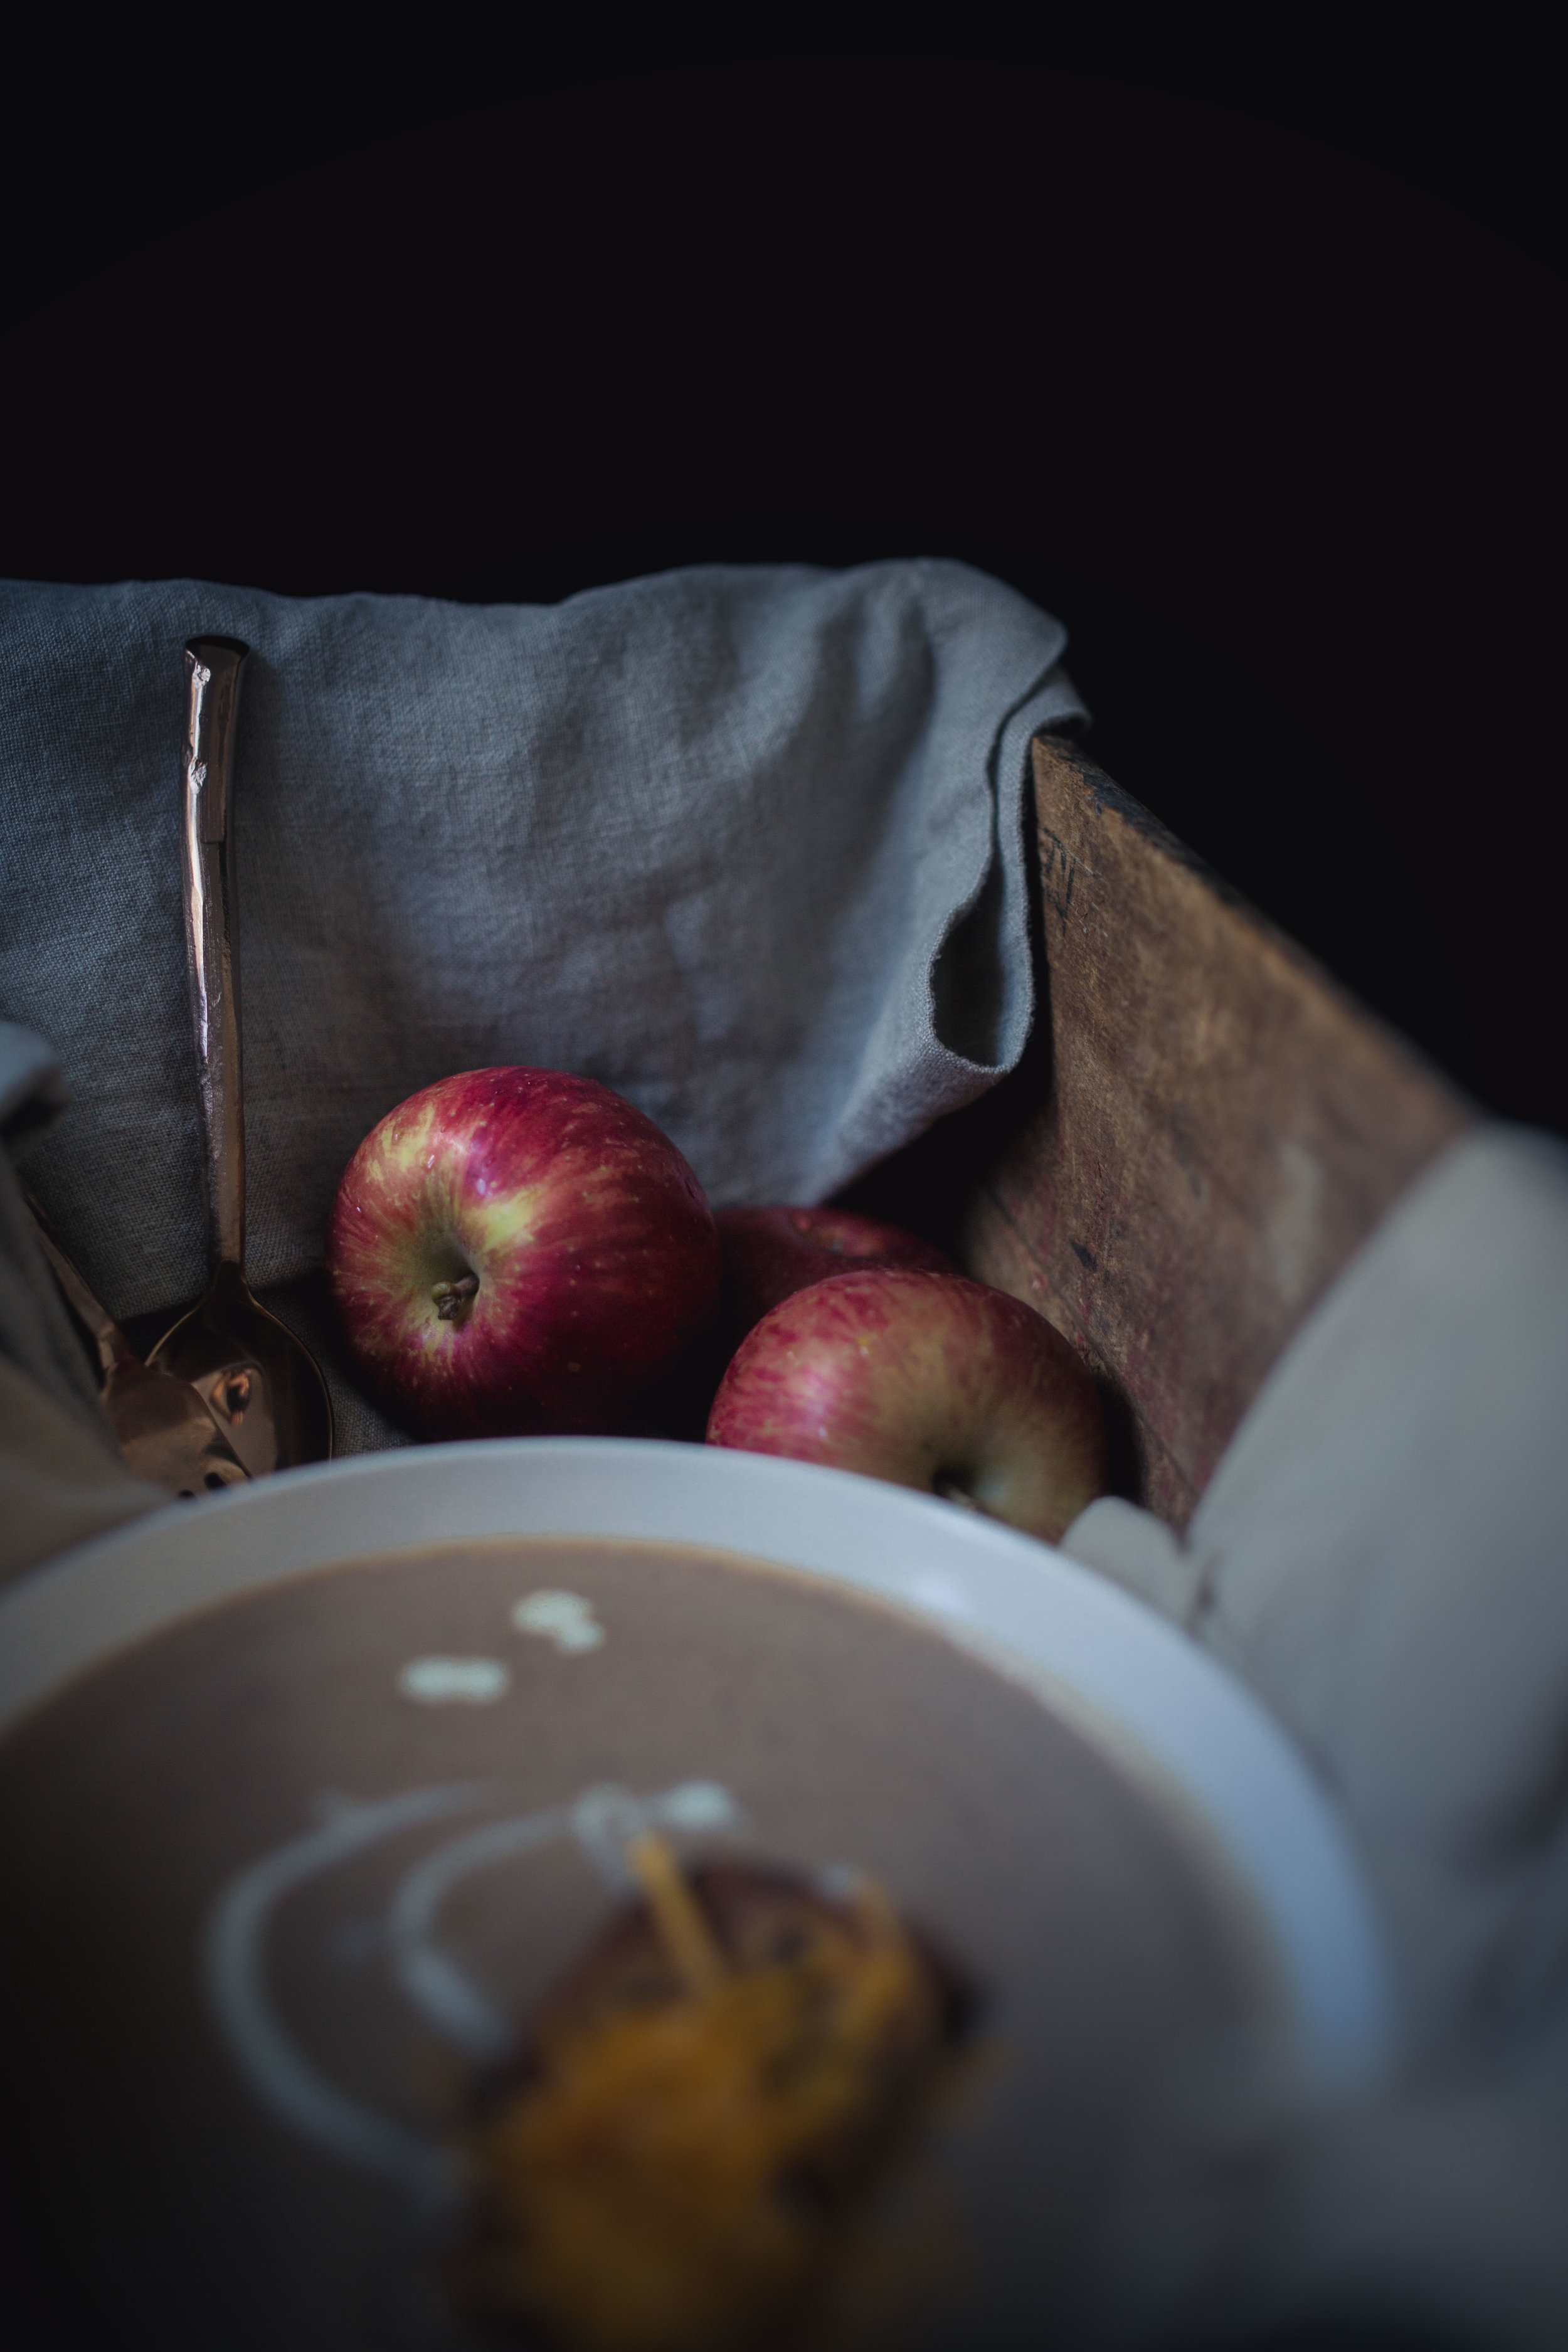 apples for fall | from scratch, mostly